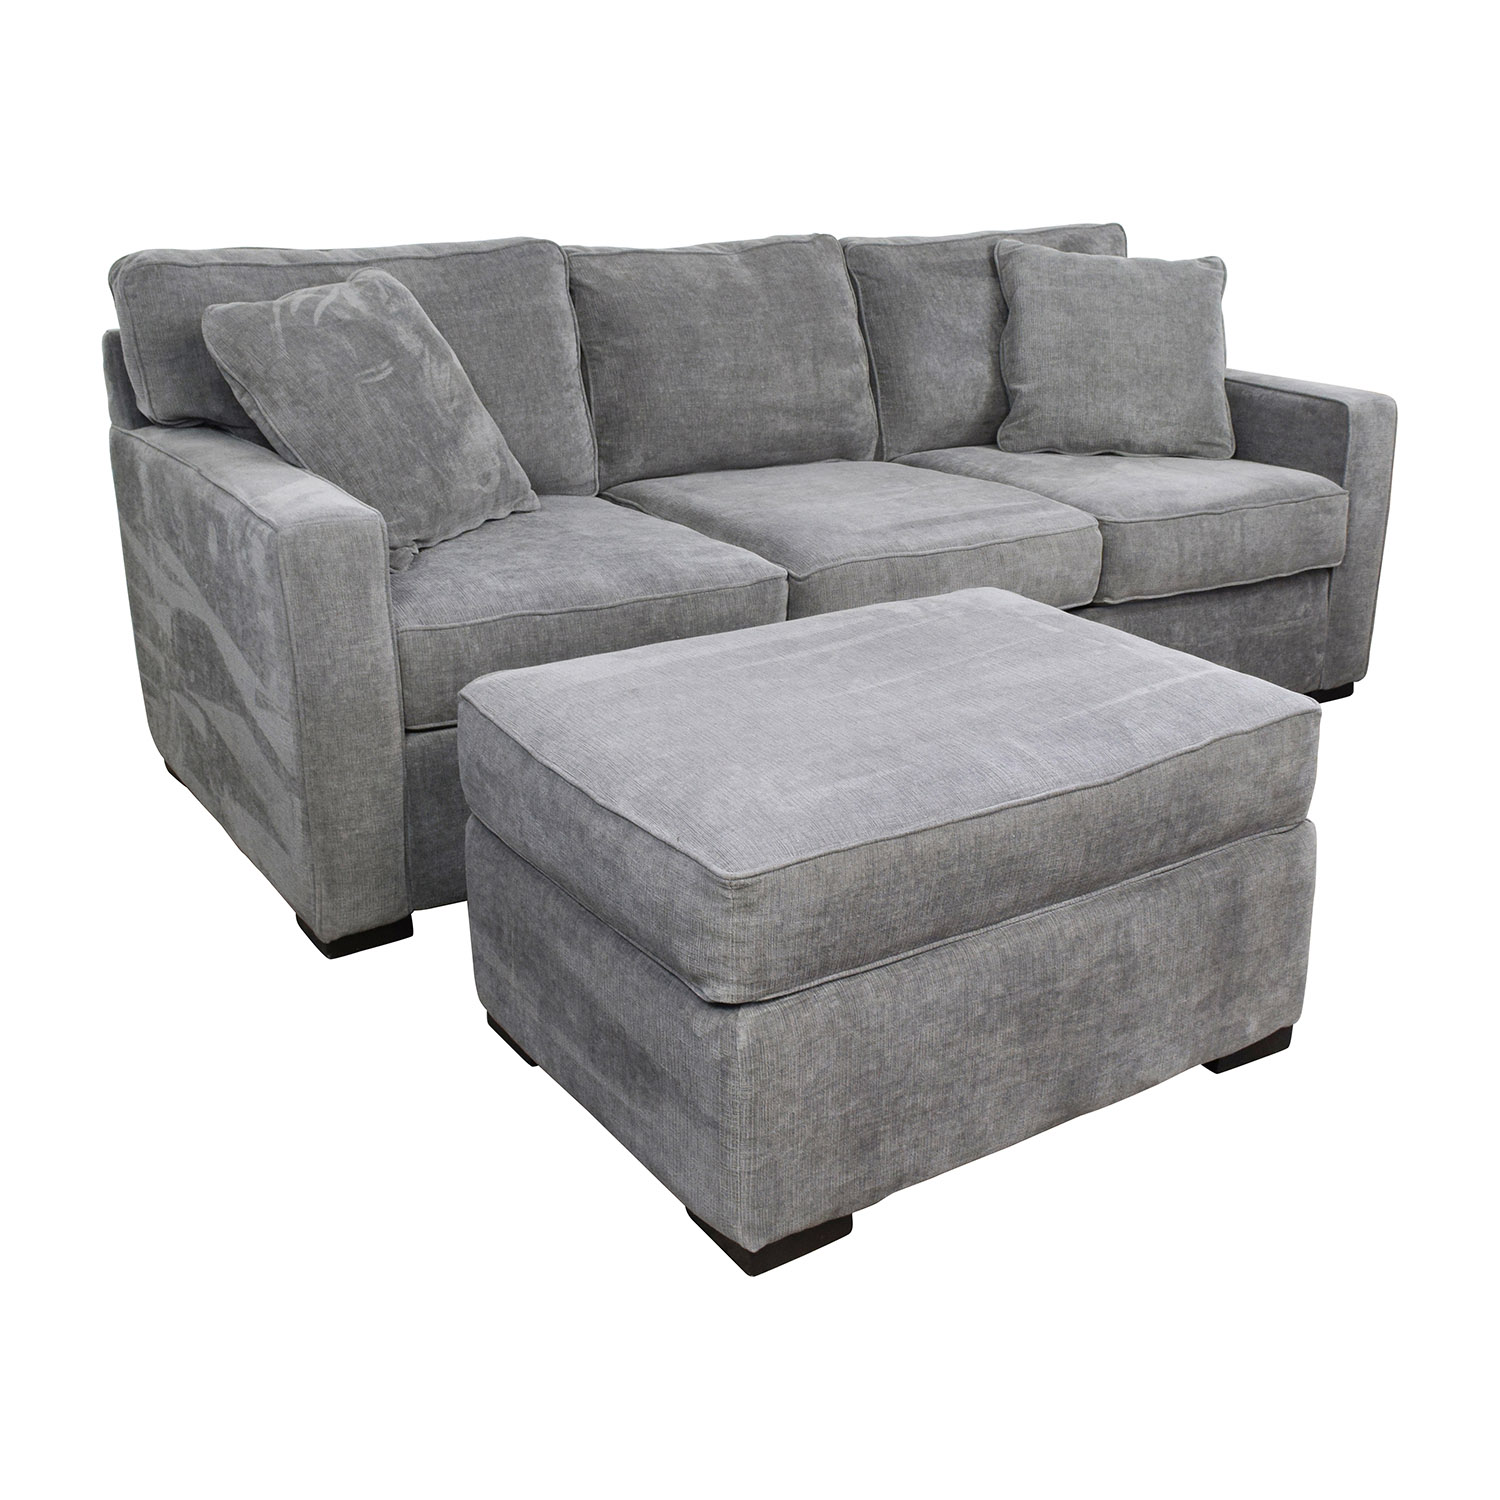 58 OFF Macys Macys Radley Grey Sofa and Ottoman Sofas